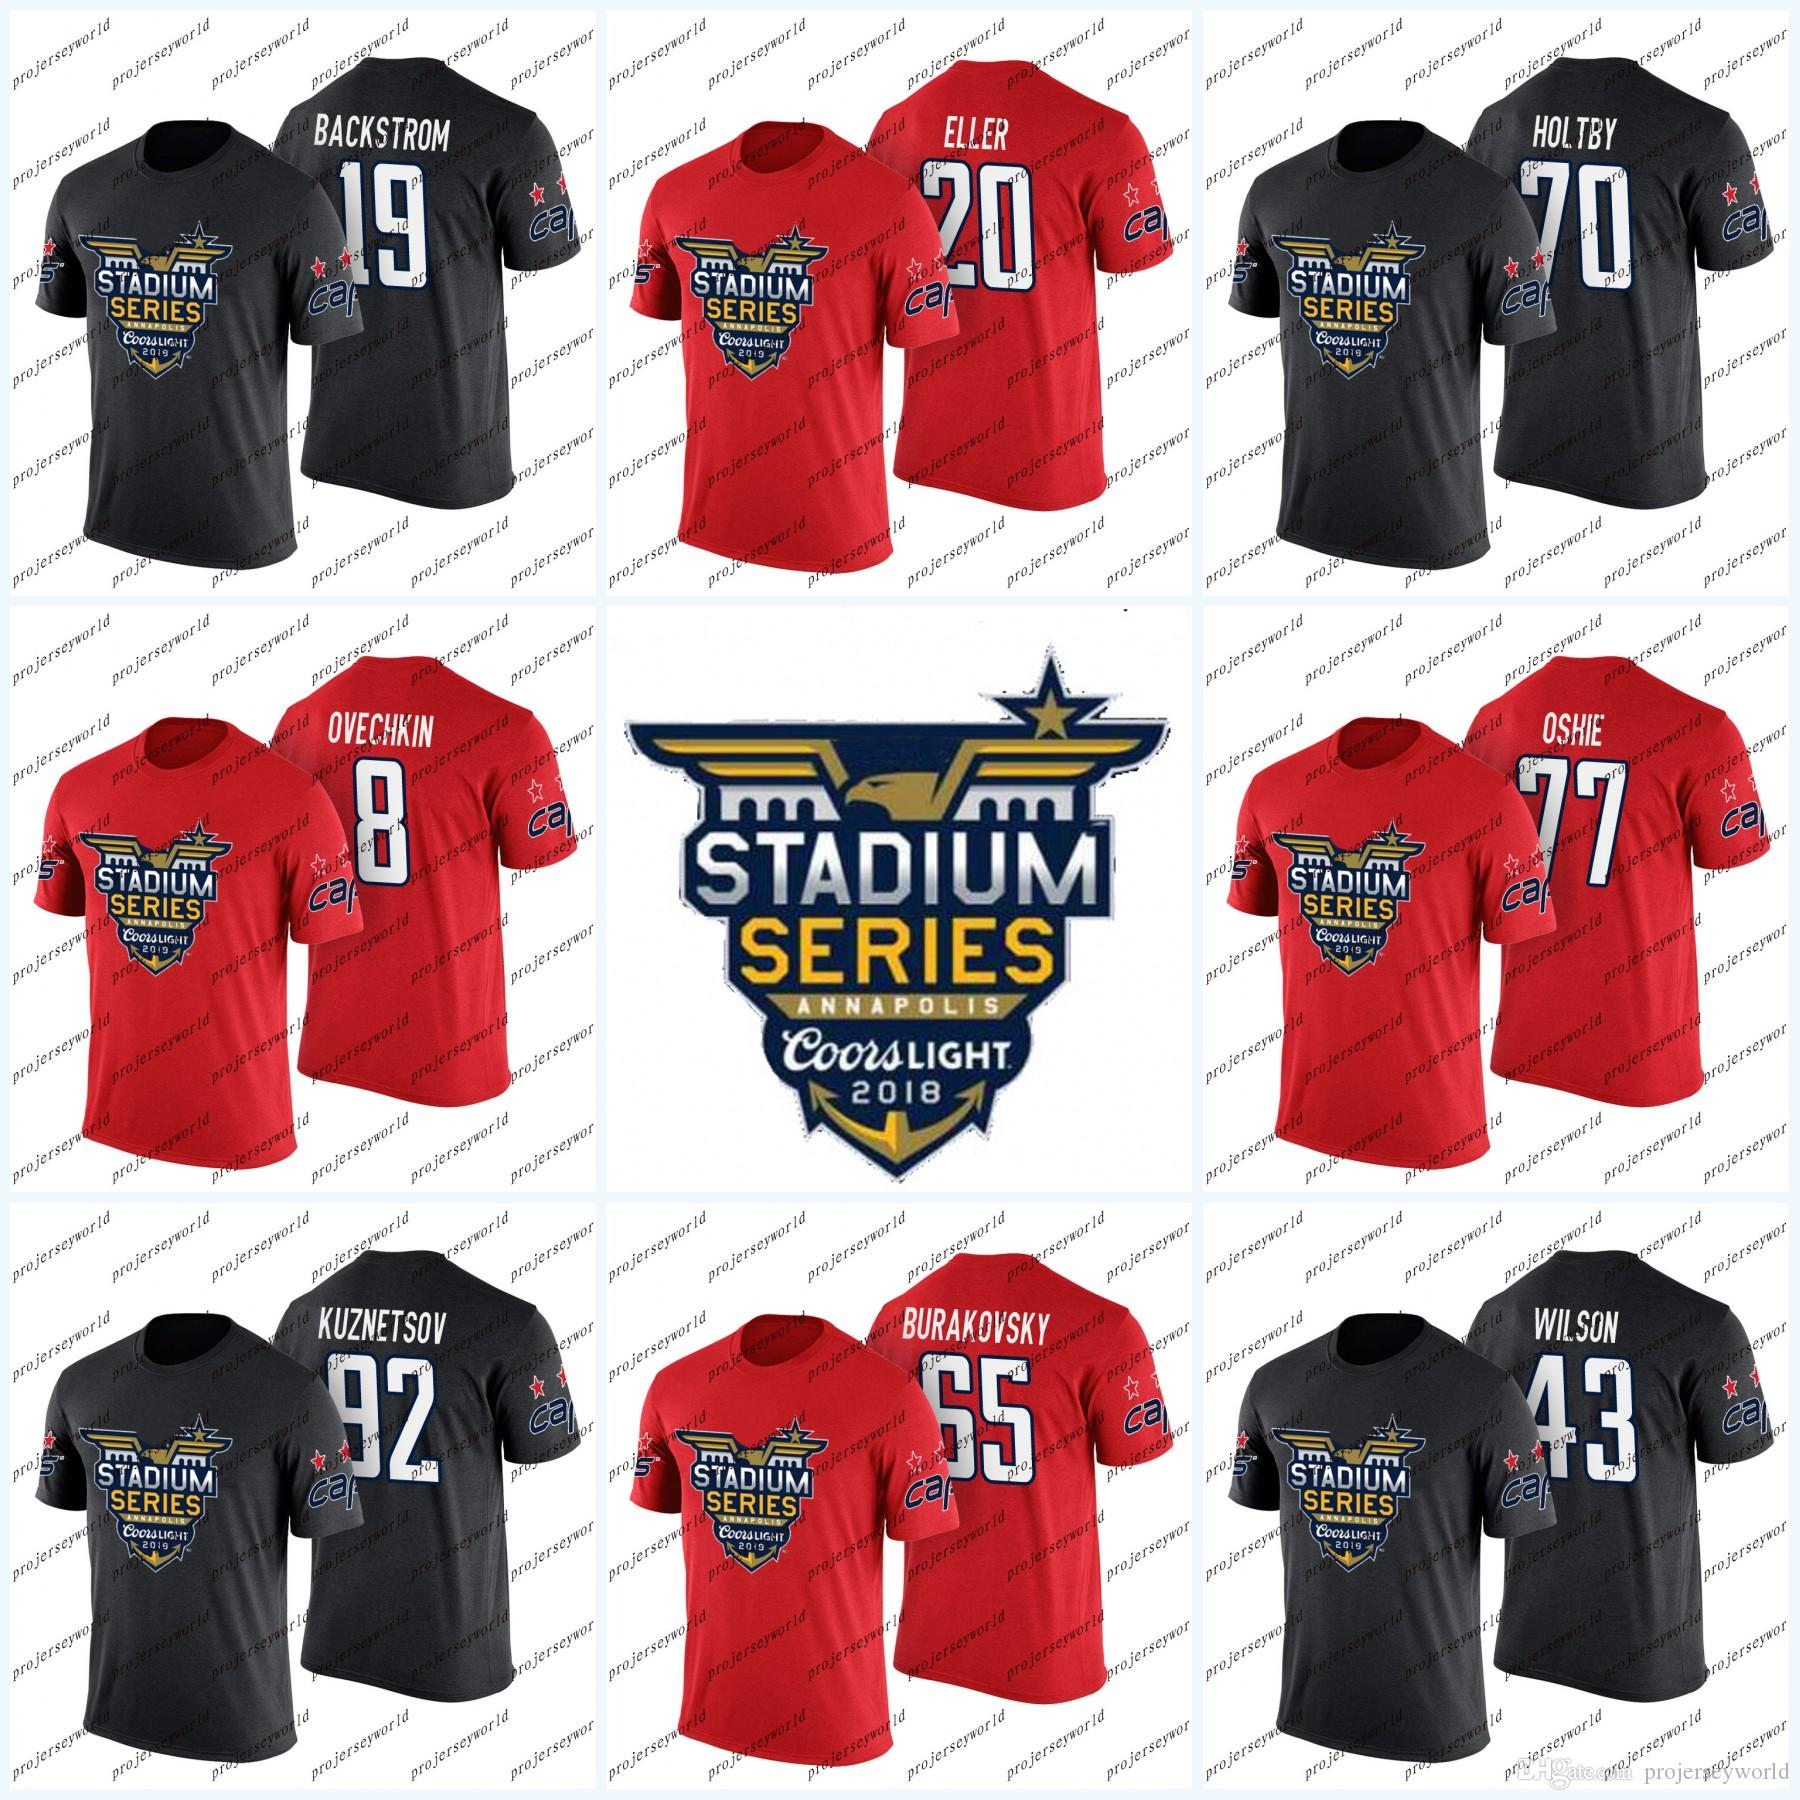 38d2266445a 70 Braden Holtby 2018 Stadium Series T-shirt Washington Capitals ...